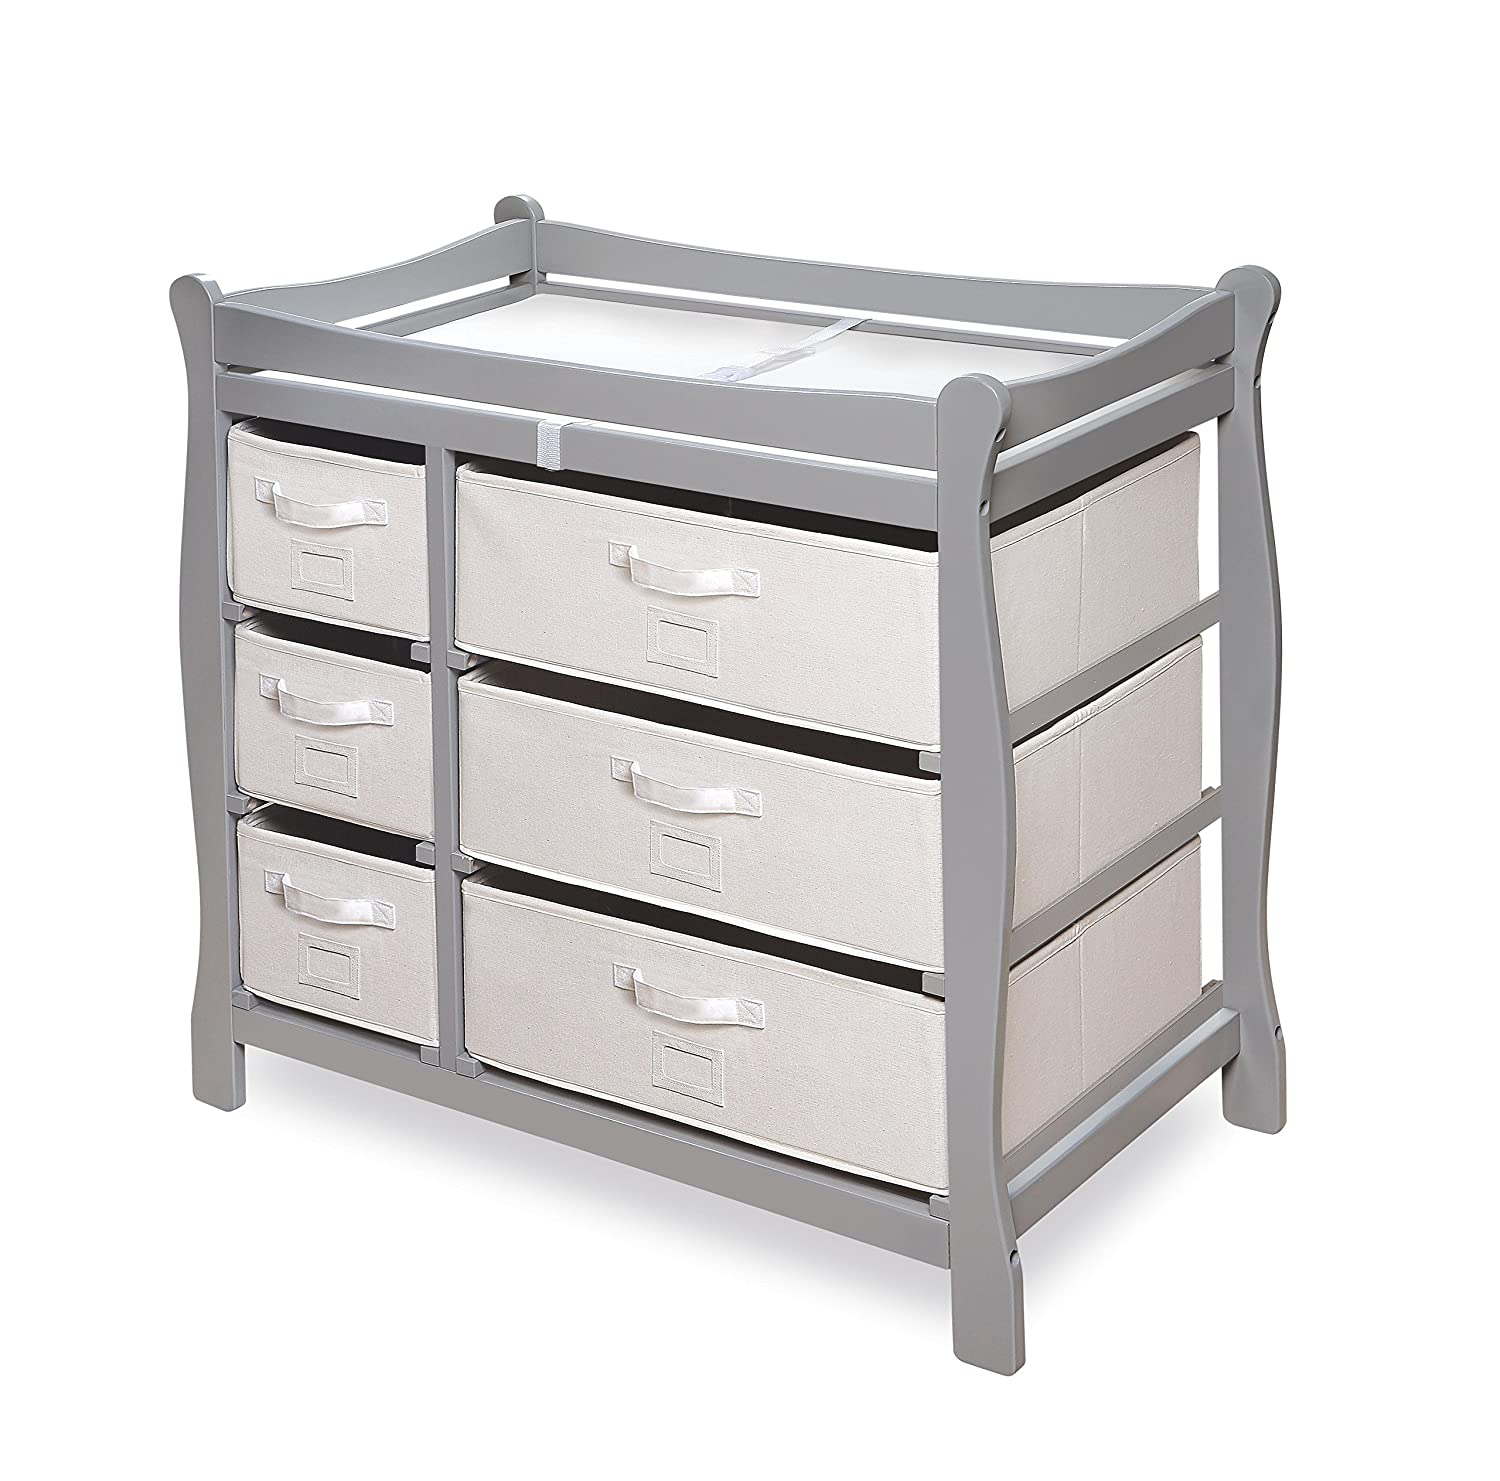 Exceptional Amazon.com : Badger Basket Sleigh Style Changing Table With Six Baskets,  Gray : Baby